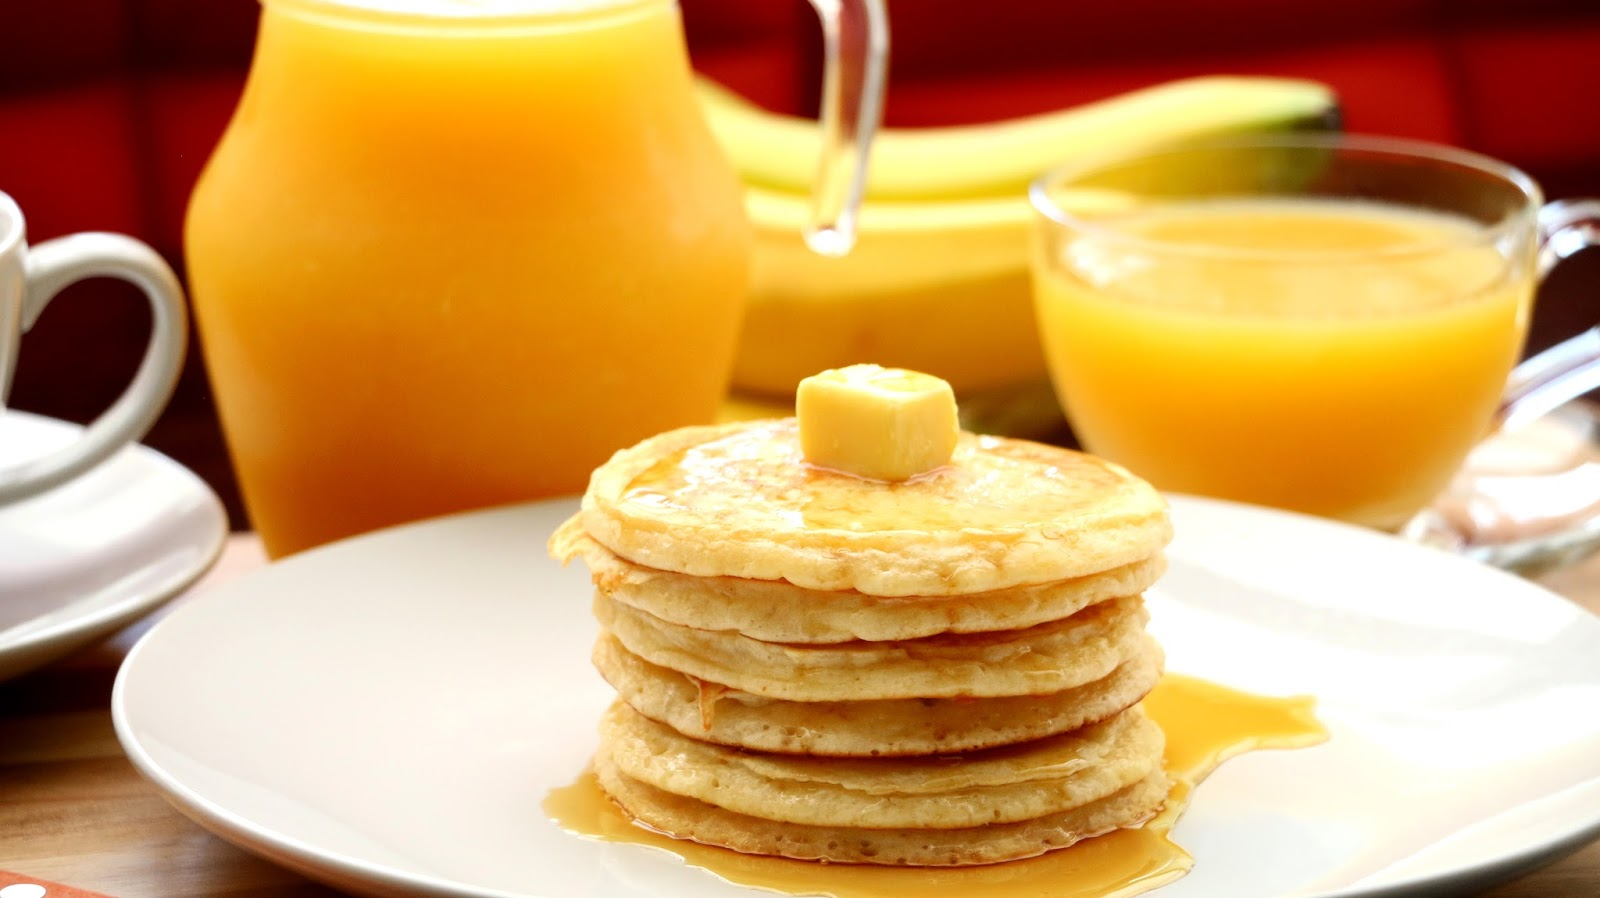 Josephines recipes how to make pancakes fluffy pancake recipe these pancakes are light and fluffy they are perfect for weekend brunch or a deliciously comforting breakfast it can be topped with butter maple syrup ccuart Gallery